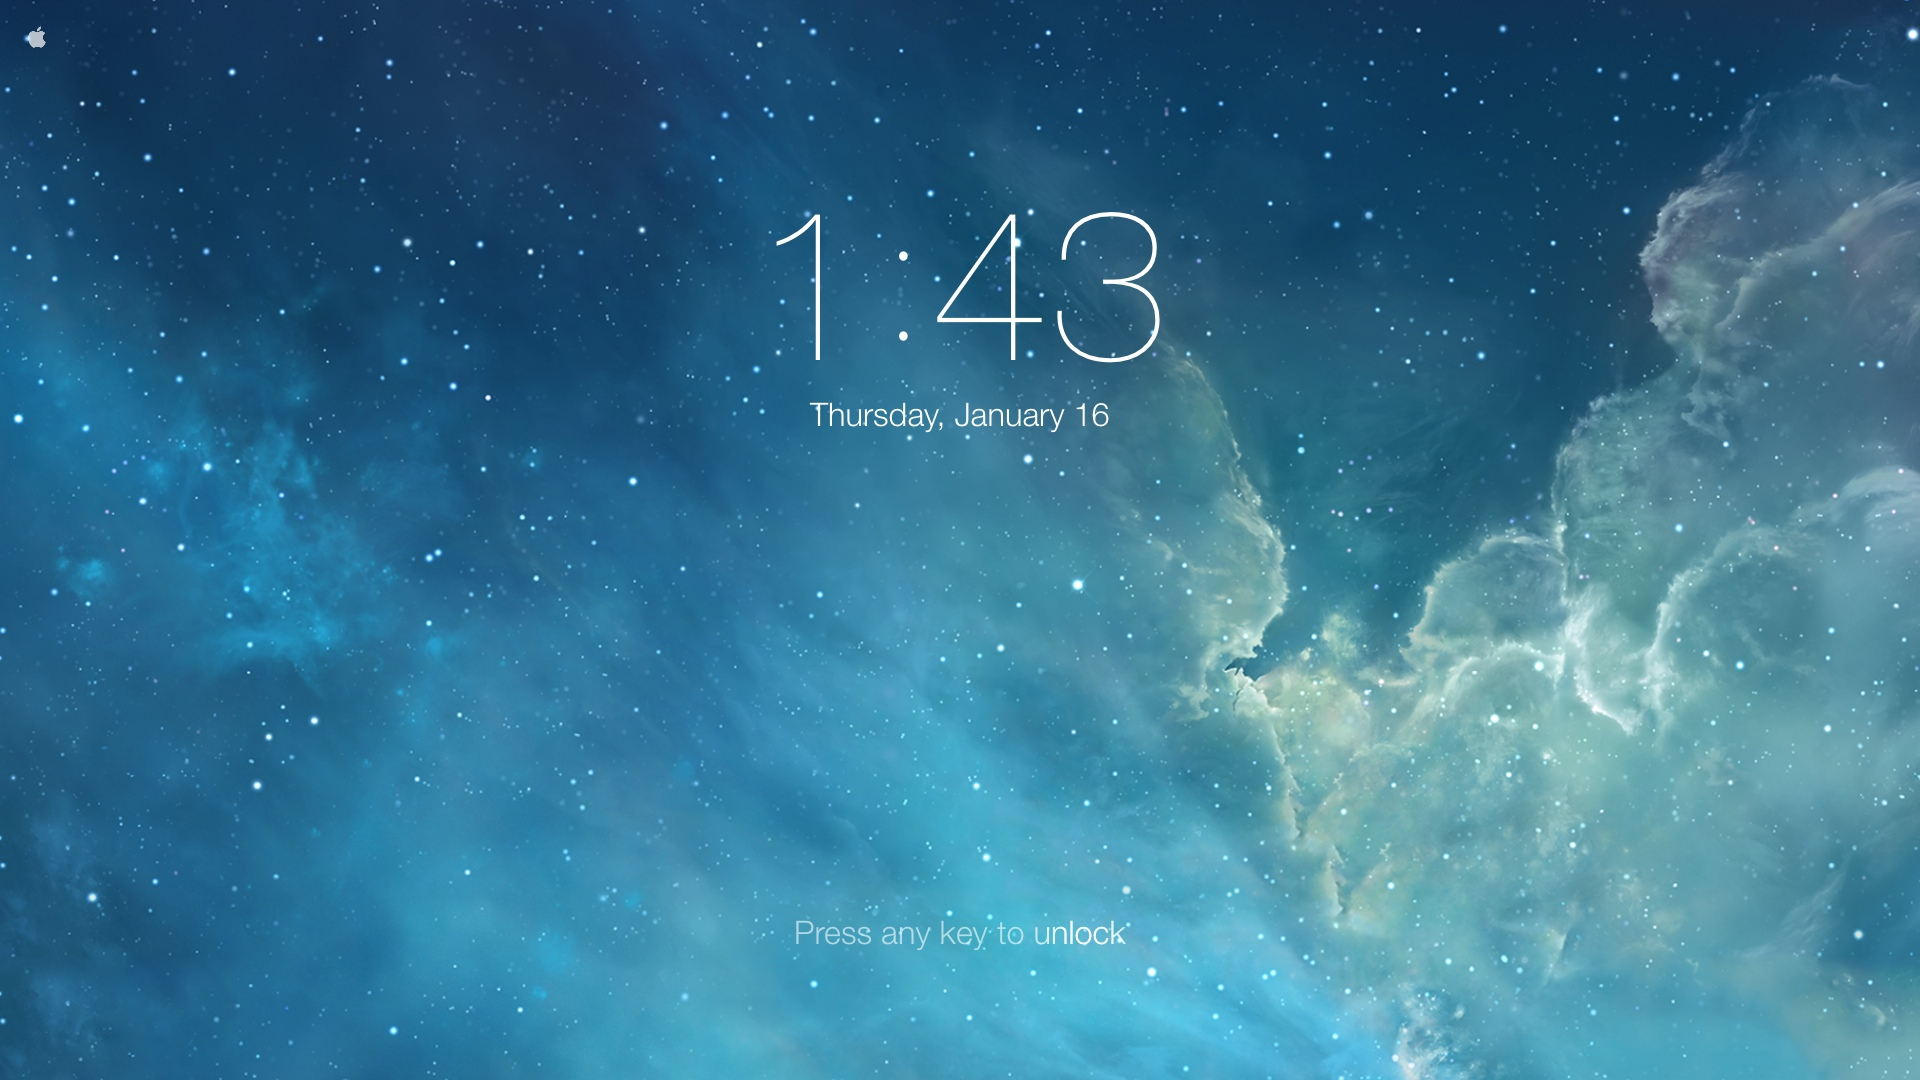 Blog Archive iOS 7 Lockscreen Wallpaper Screensaver Better on Mac 1920x1080